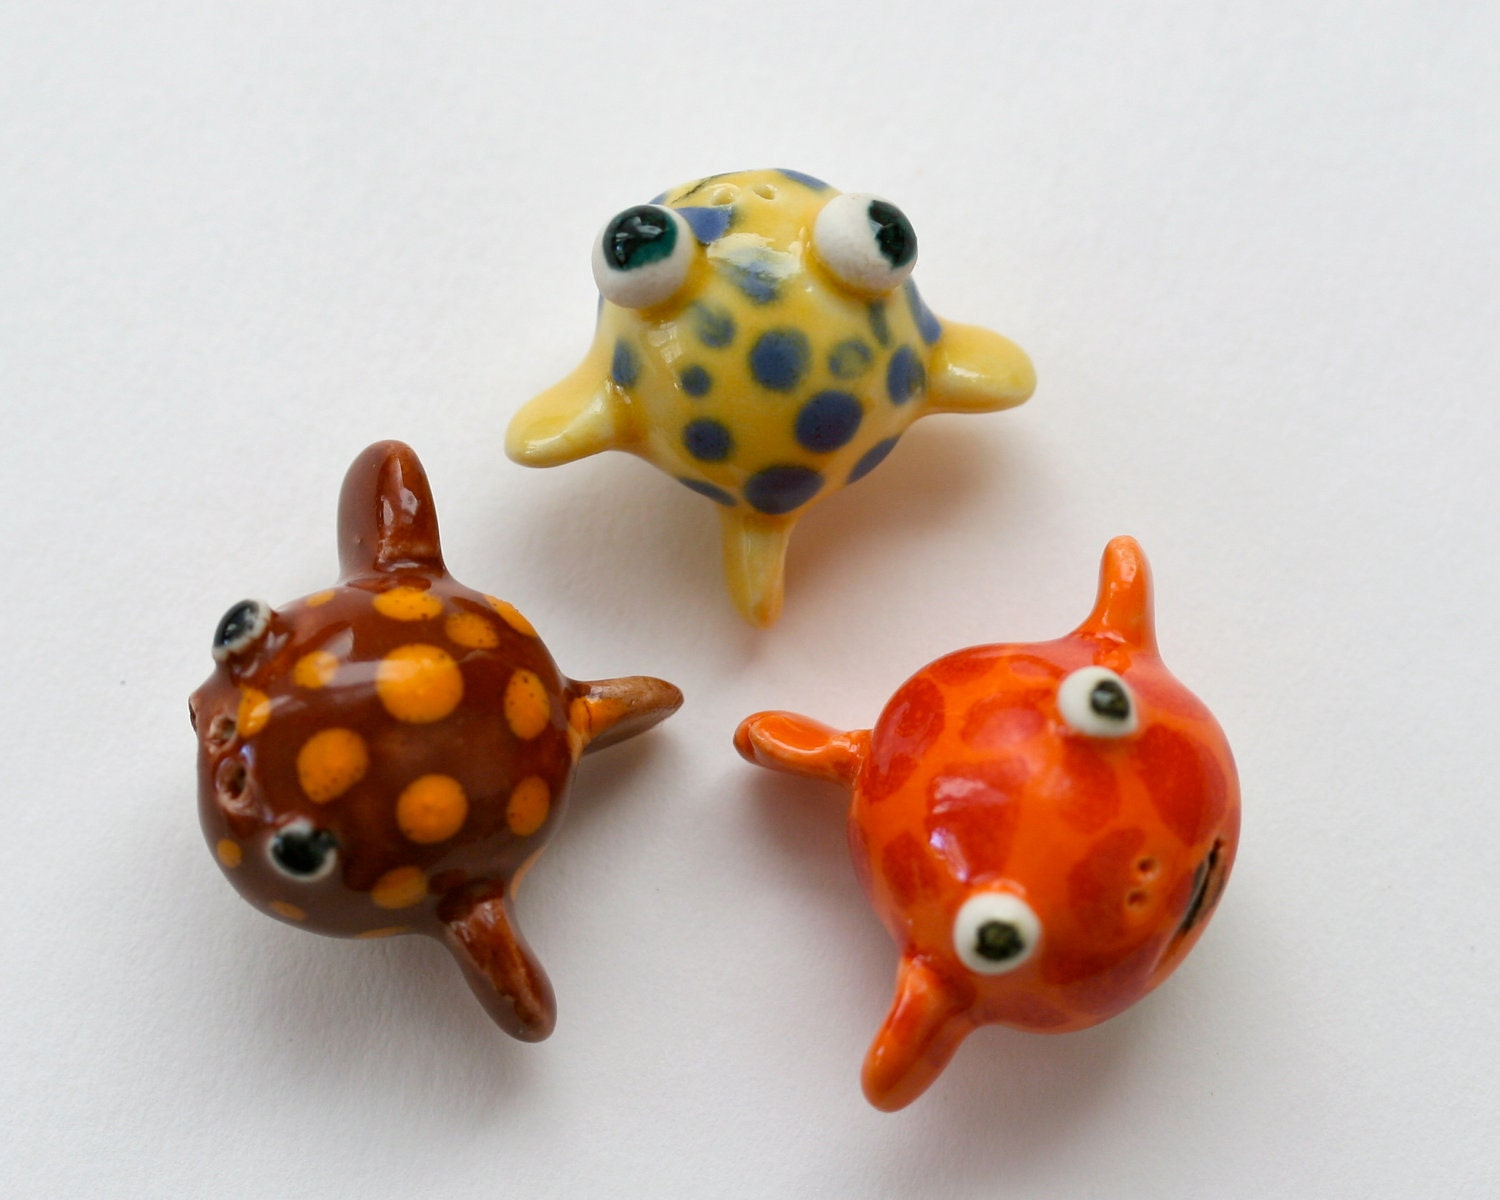 Items similar to miniature puffer fish figurines on etsy for Mini puffer fish